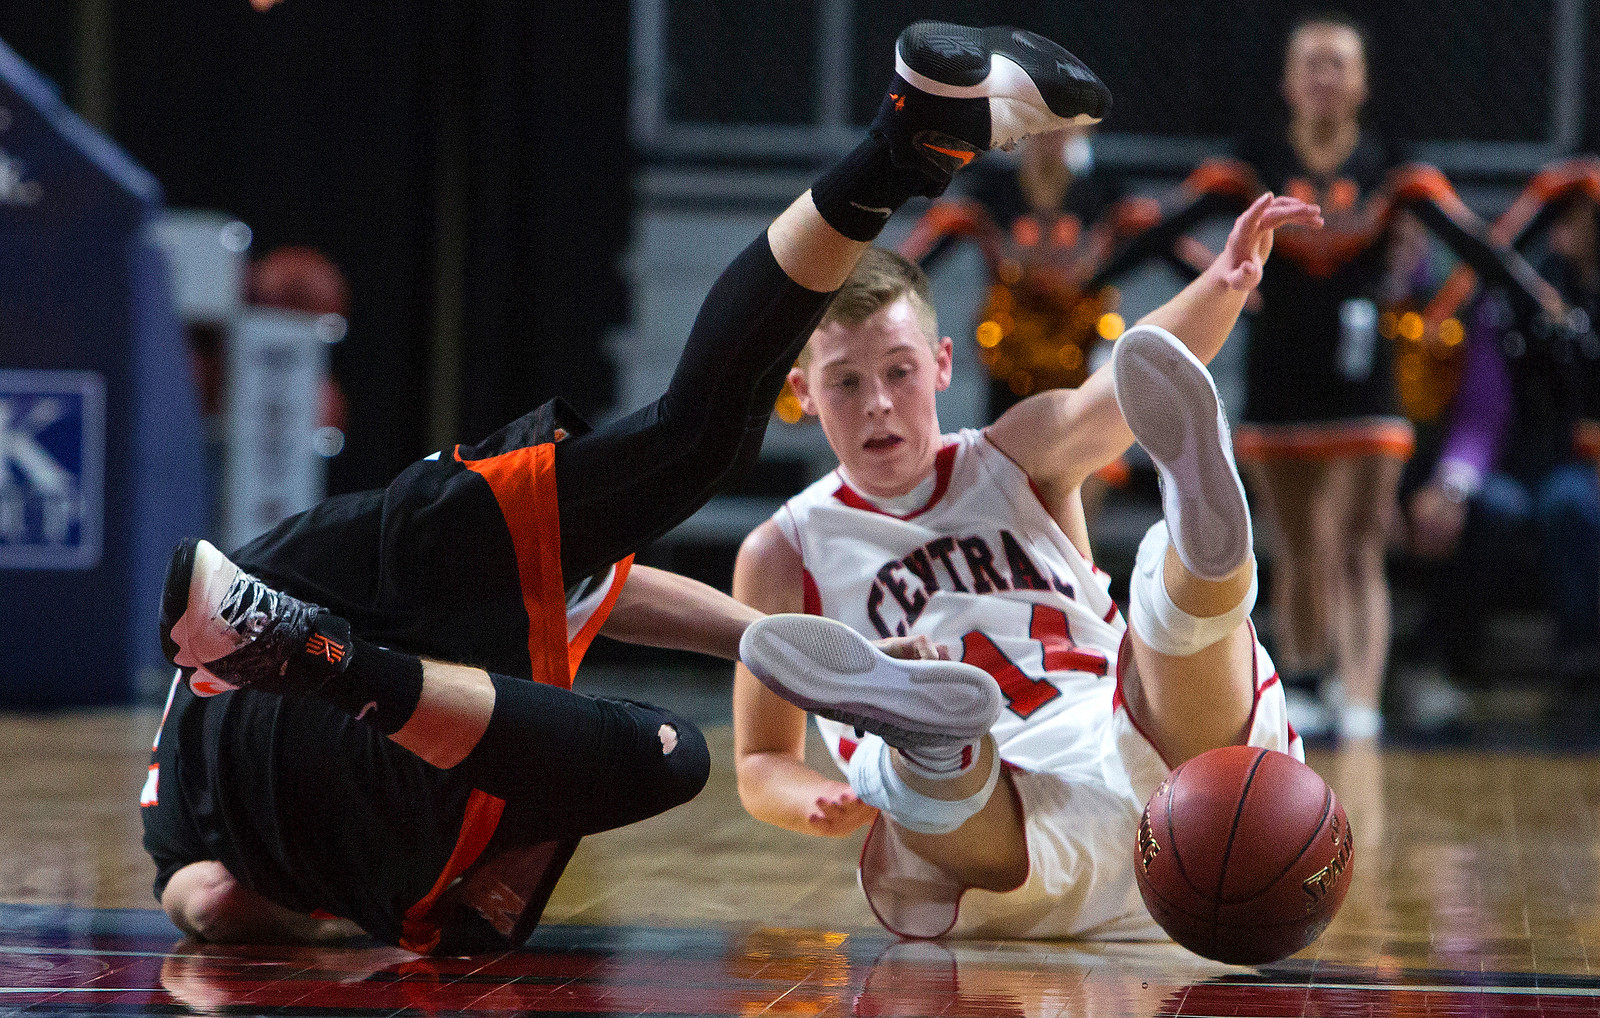 BANGOR, Maine -- 02/17/2017 -- Winslow's Dylan Hutchinson (left) and Central's Micah M. Ward battle on the floor for a loose ball during their Class B boys basketball quarterfinal game at the Cross Insurance Center in Bangor Friday. Ashley L. Conti | BDN